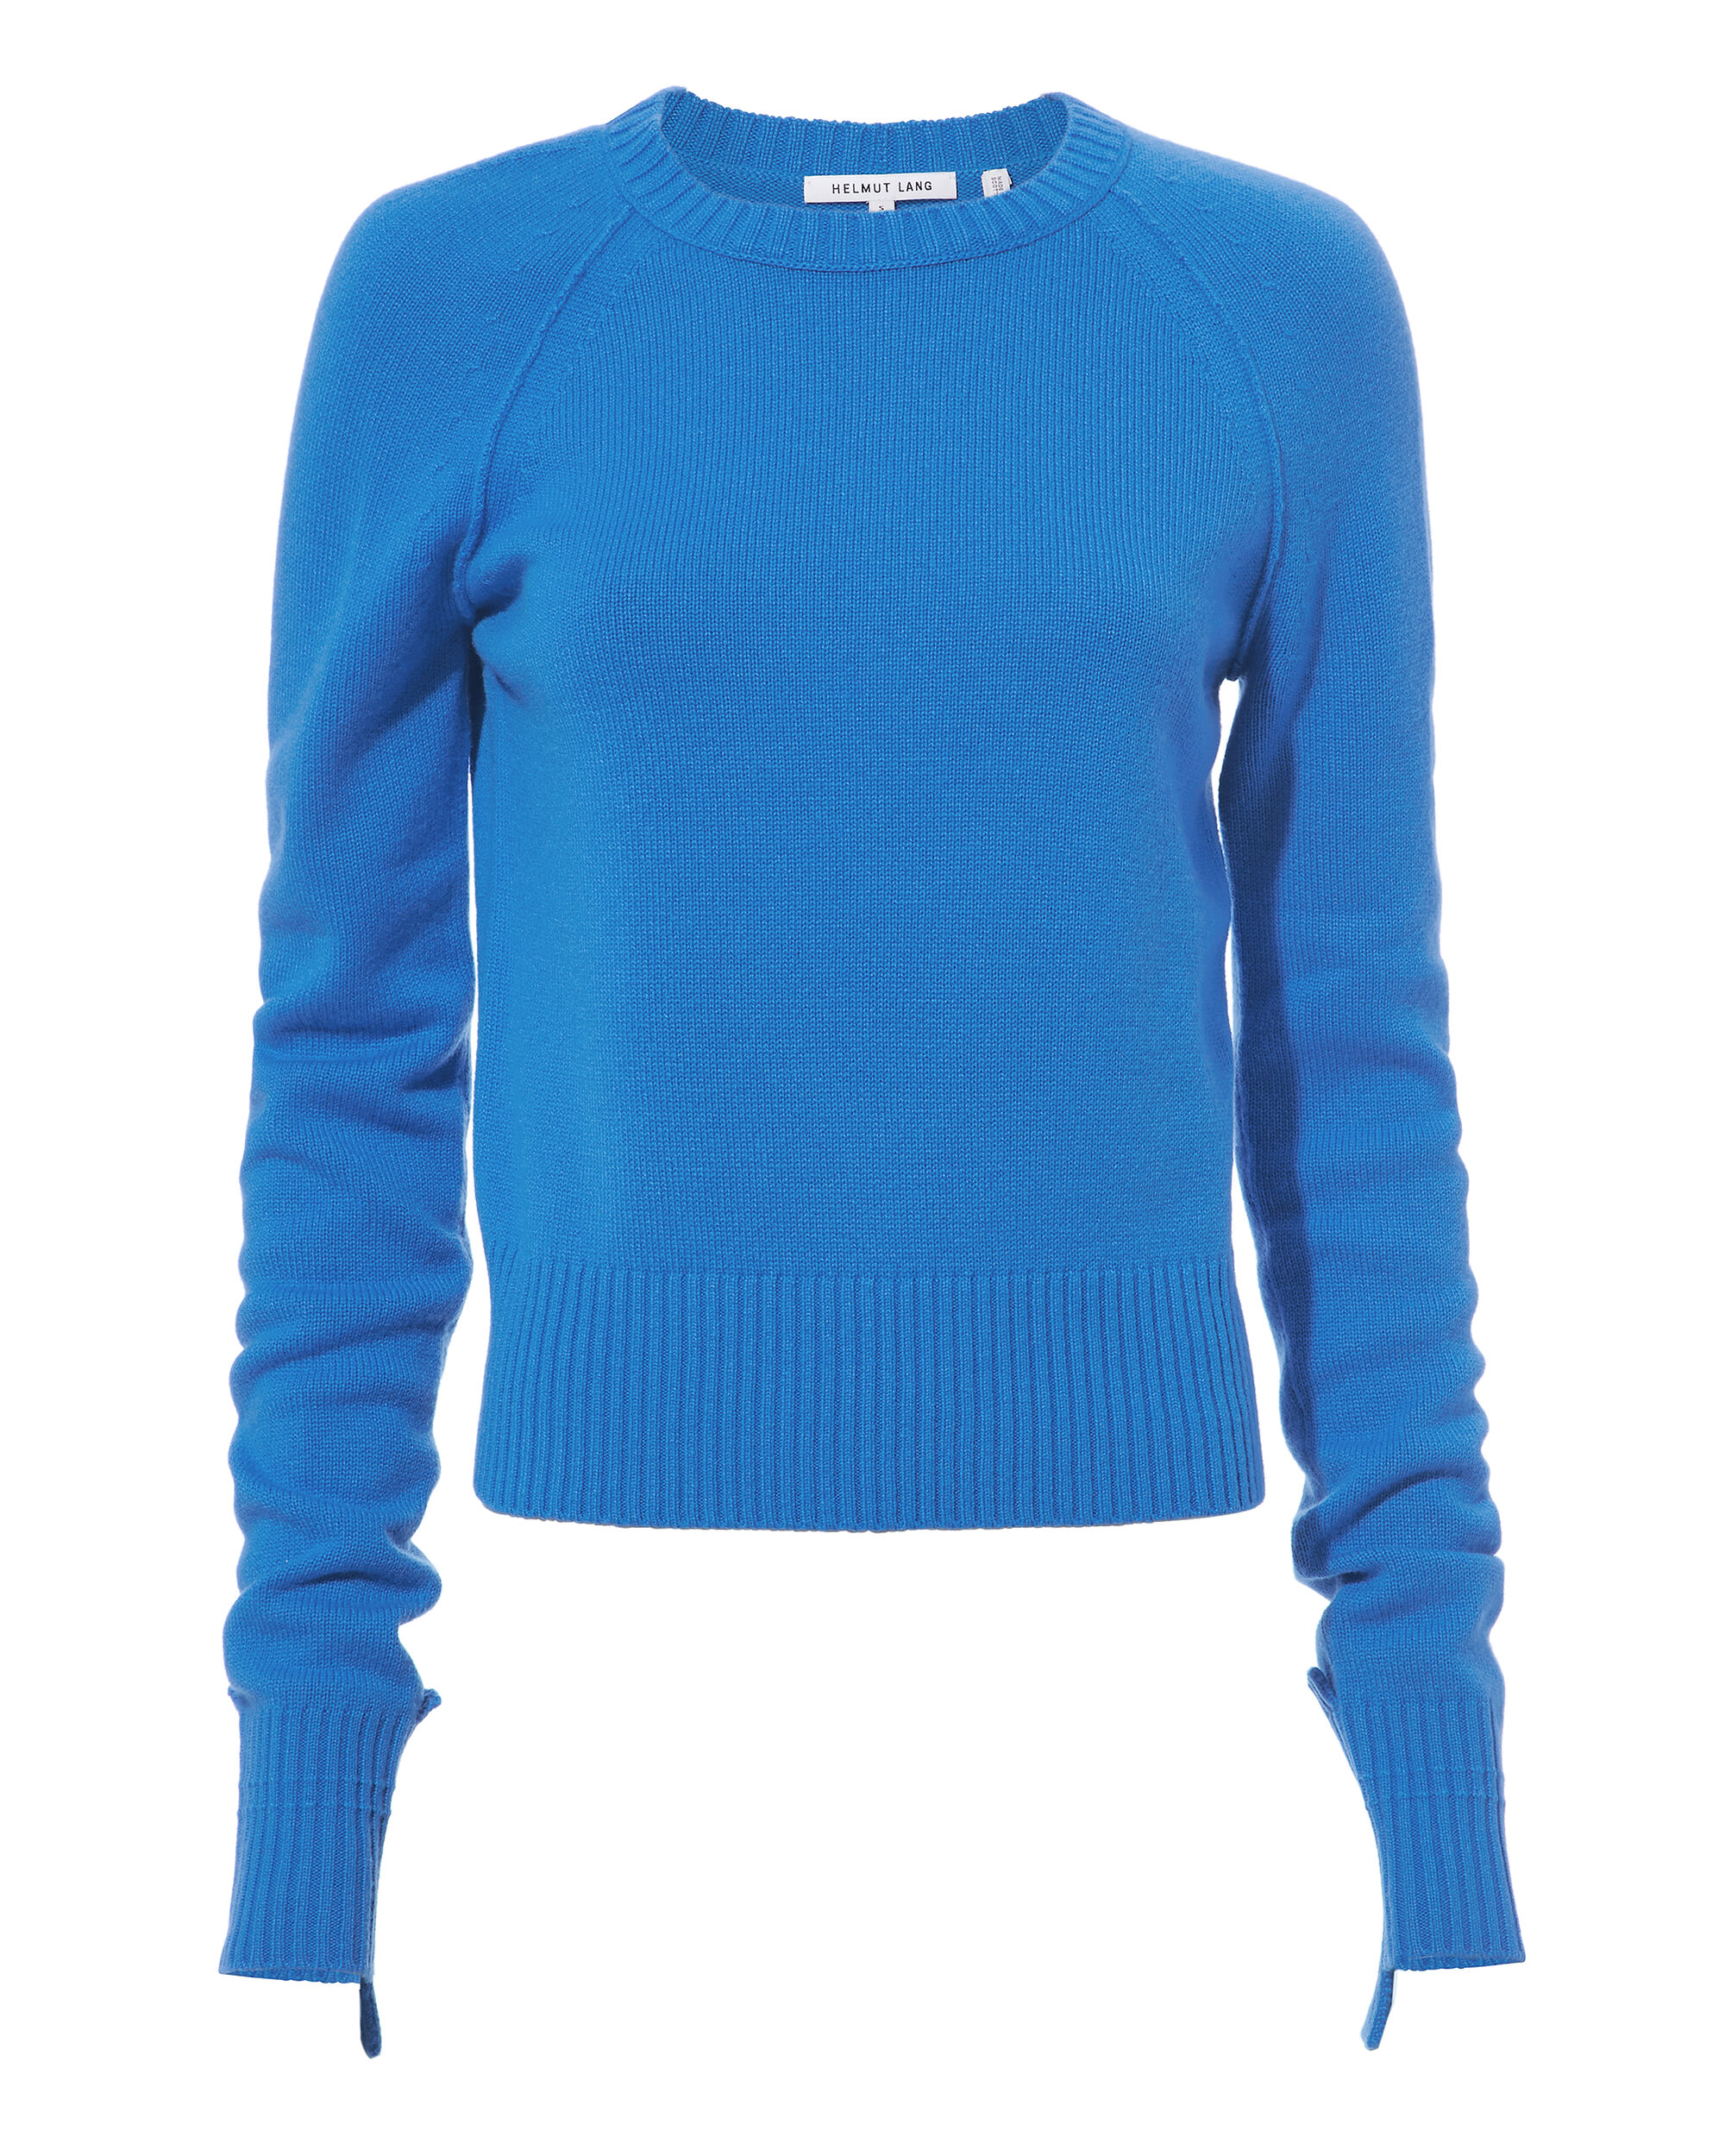 Disjointed Cuff Cashmere Sweater, BLUE-MED, hi-res